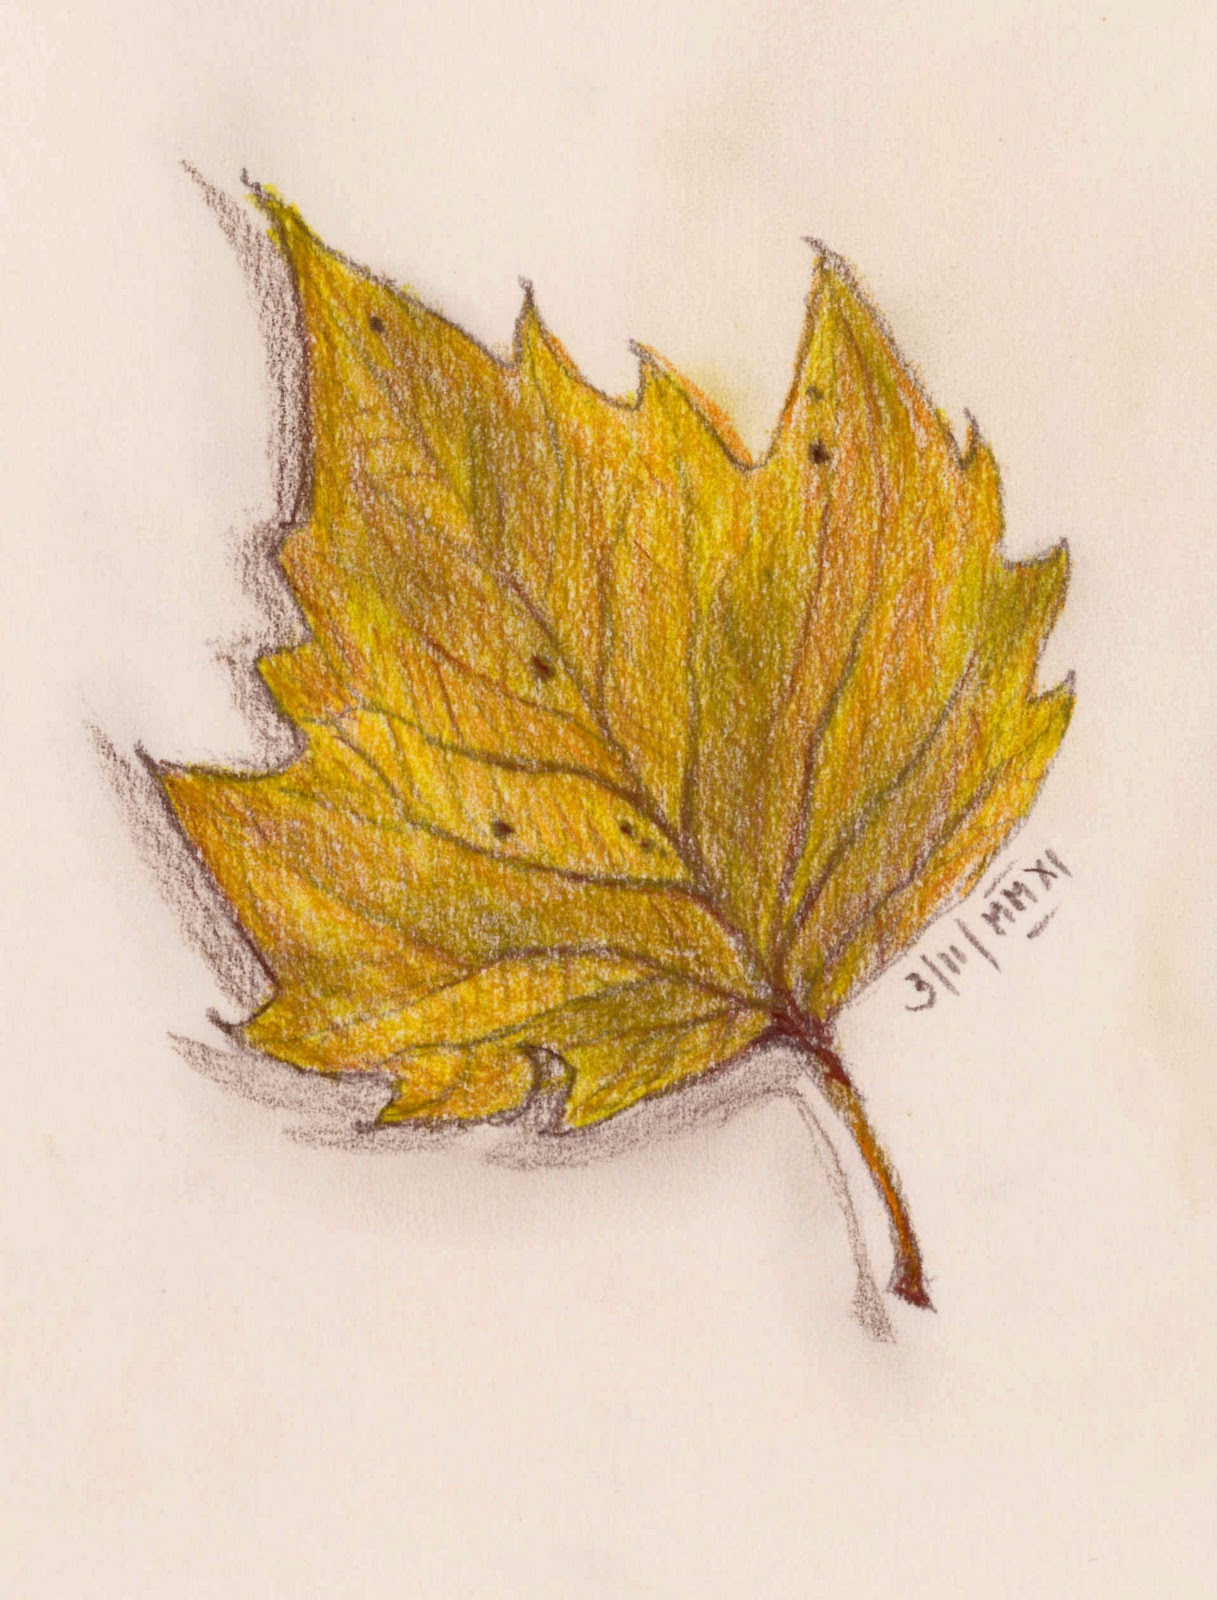 Colour pencils later in the evening once i was homepencil drawing of a leaf